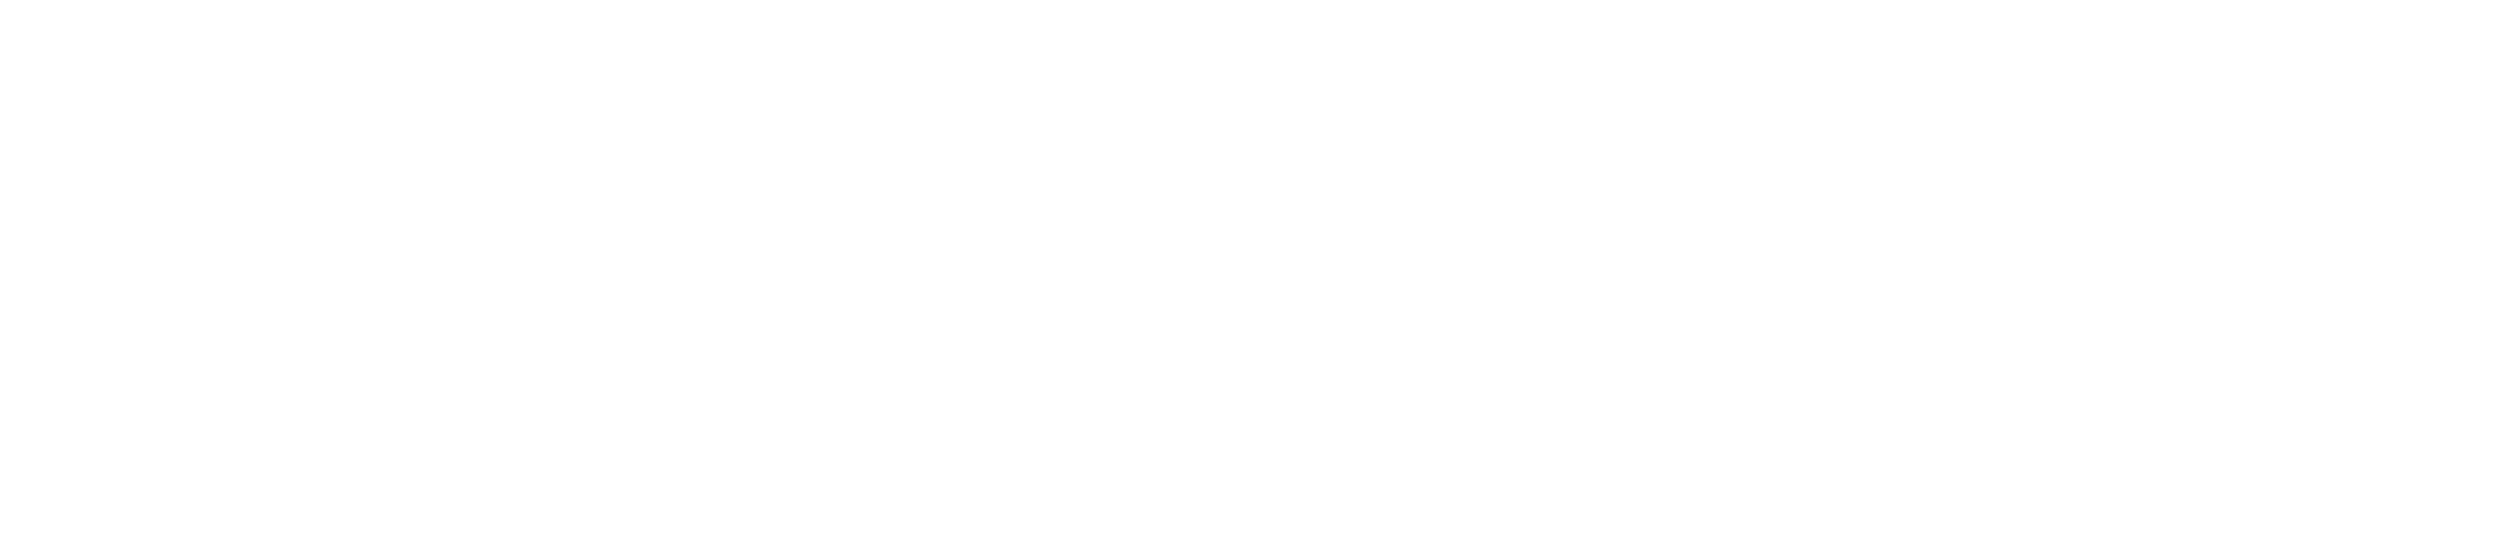 chanel boutique hotel headline.png